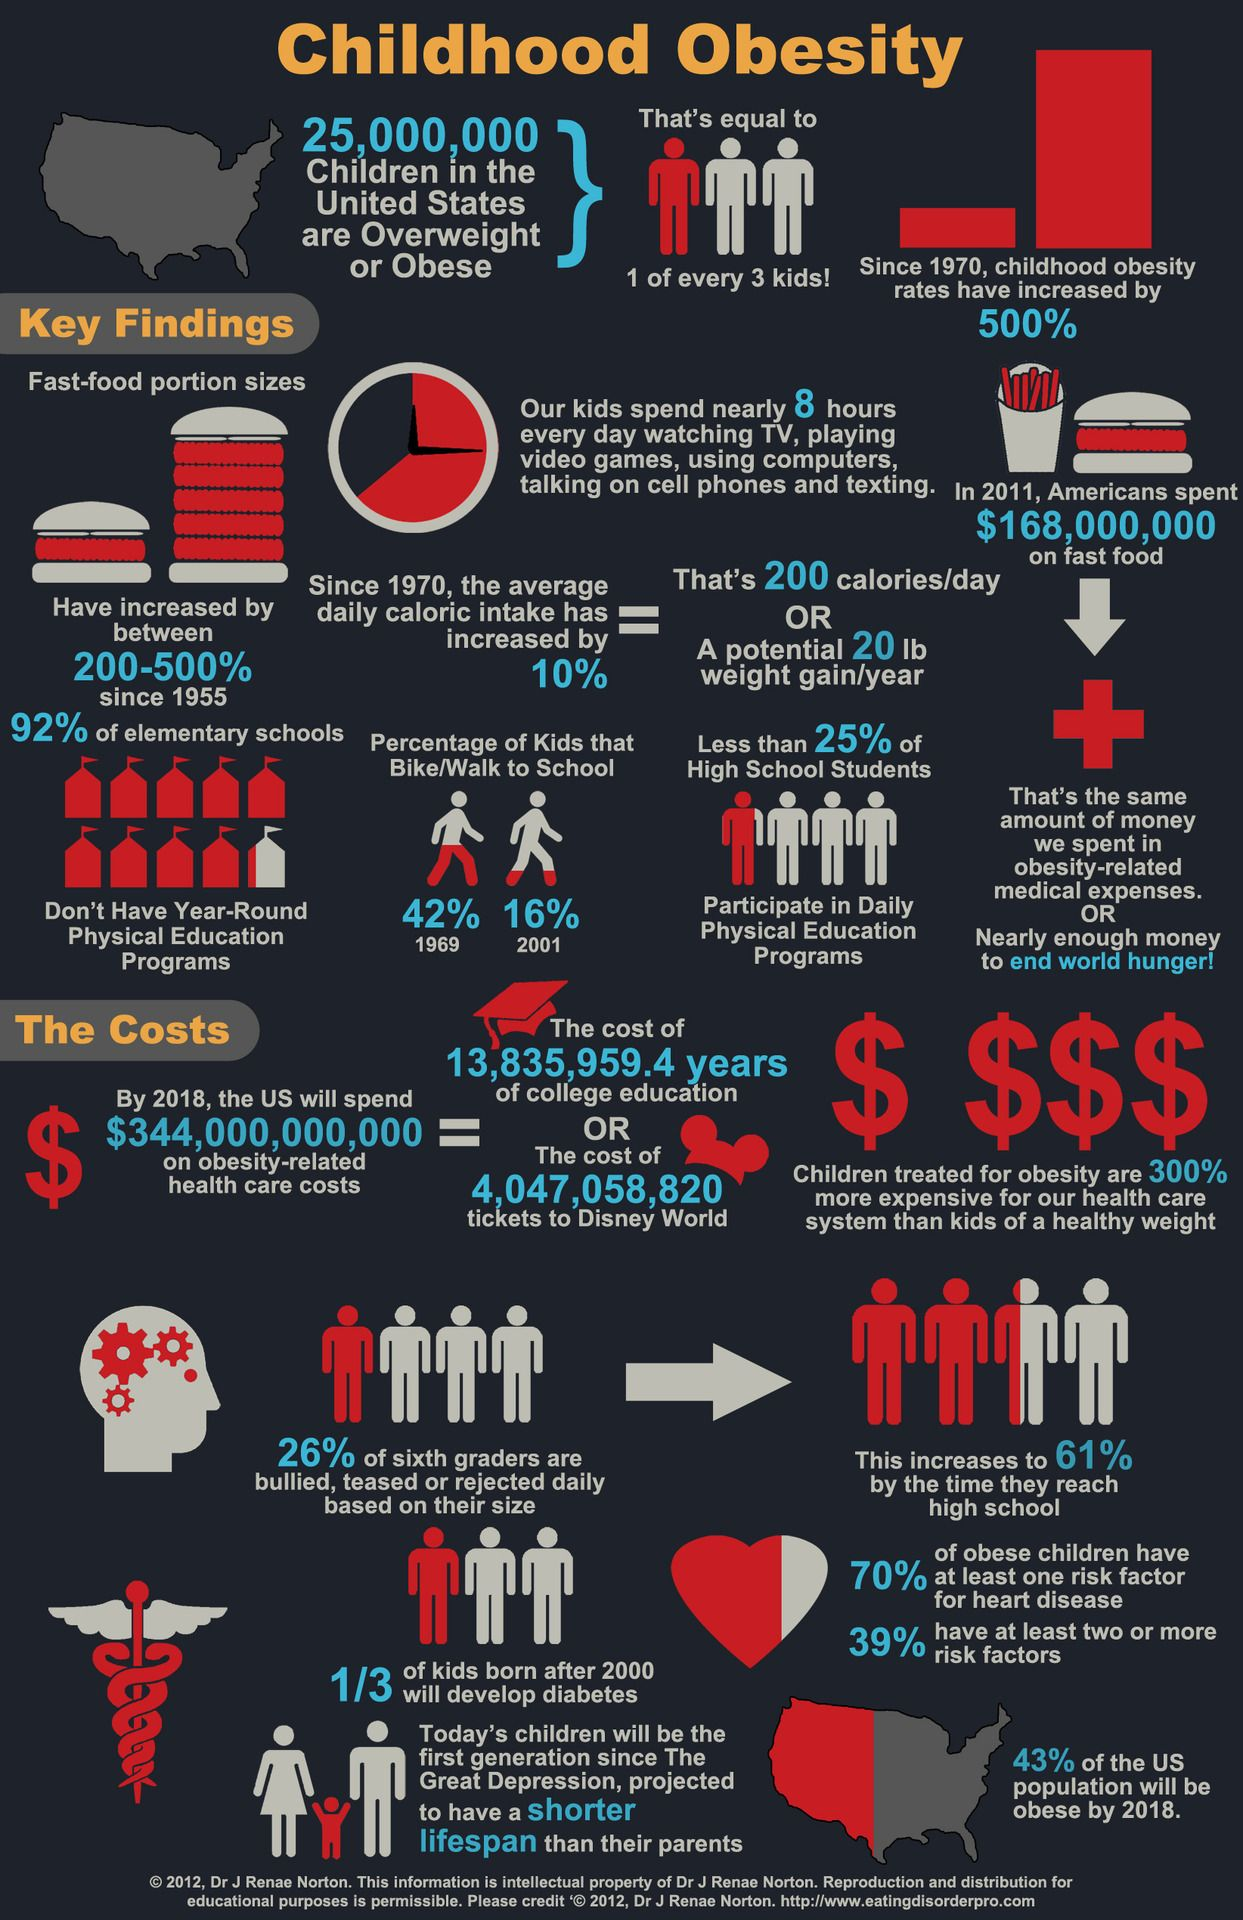 Obesity epidemic infographic. There are so many simple